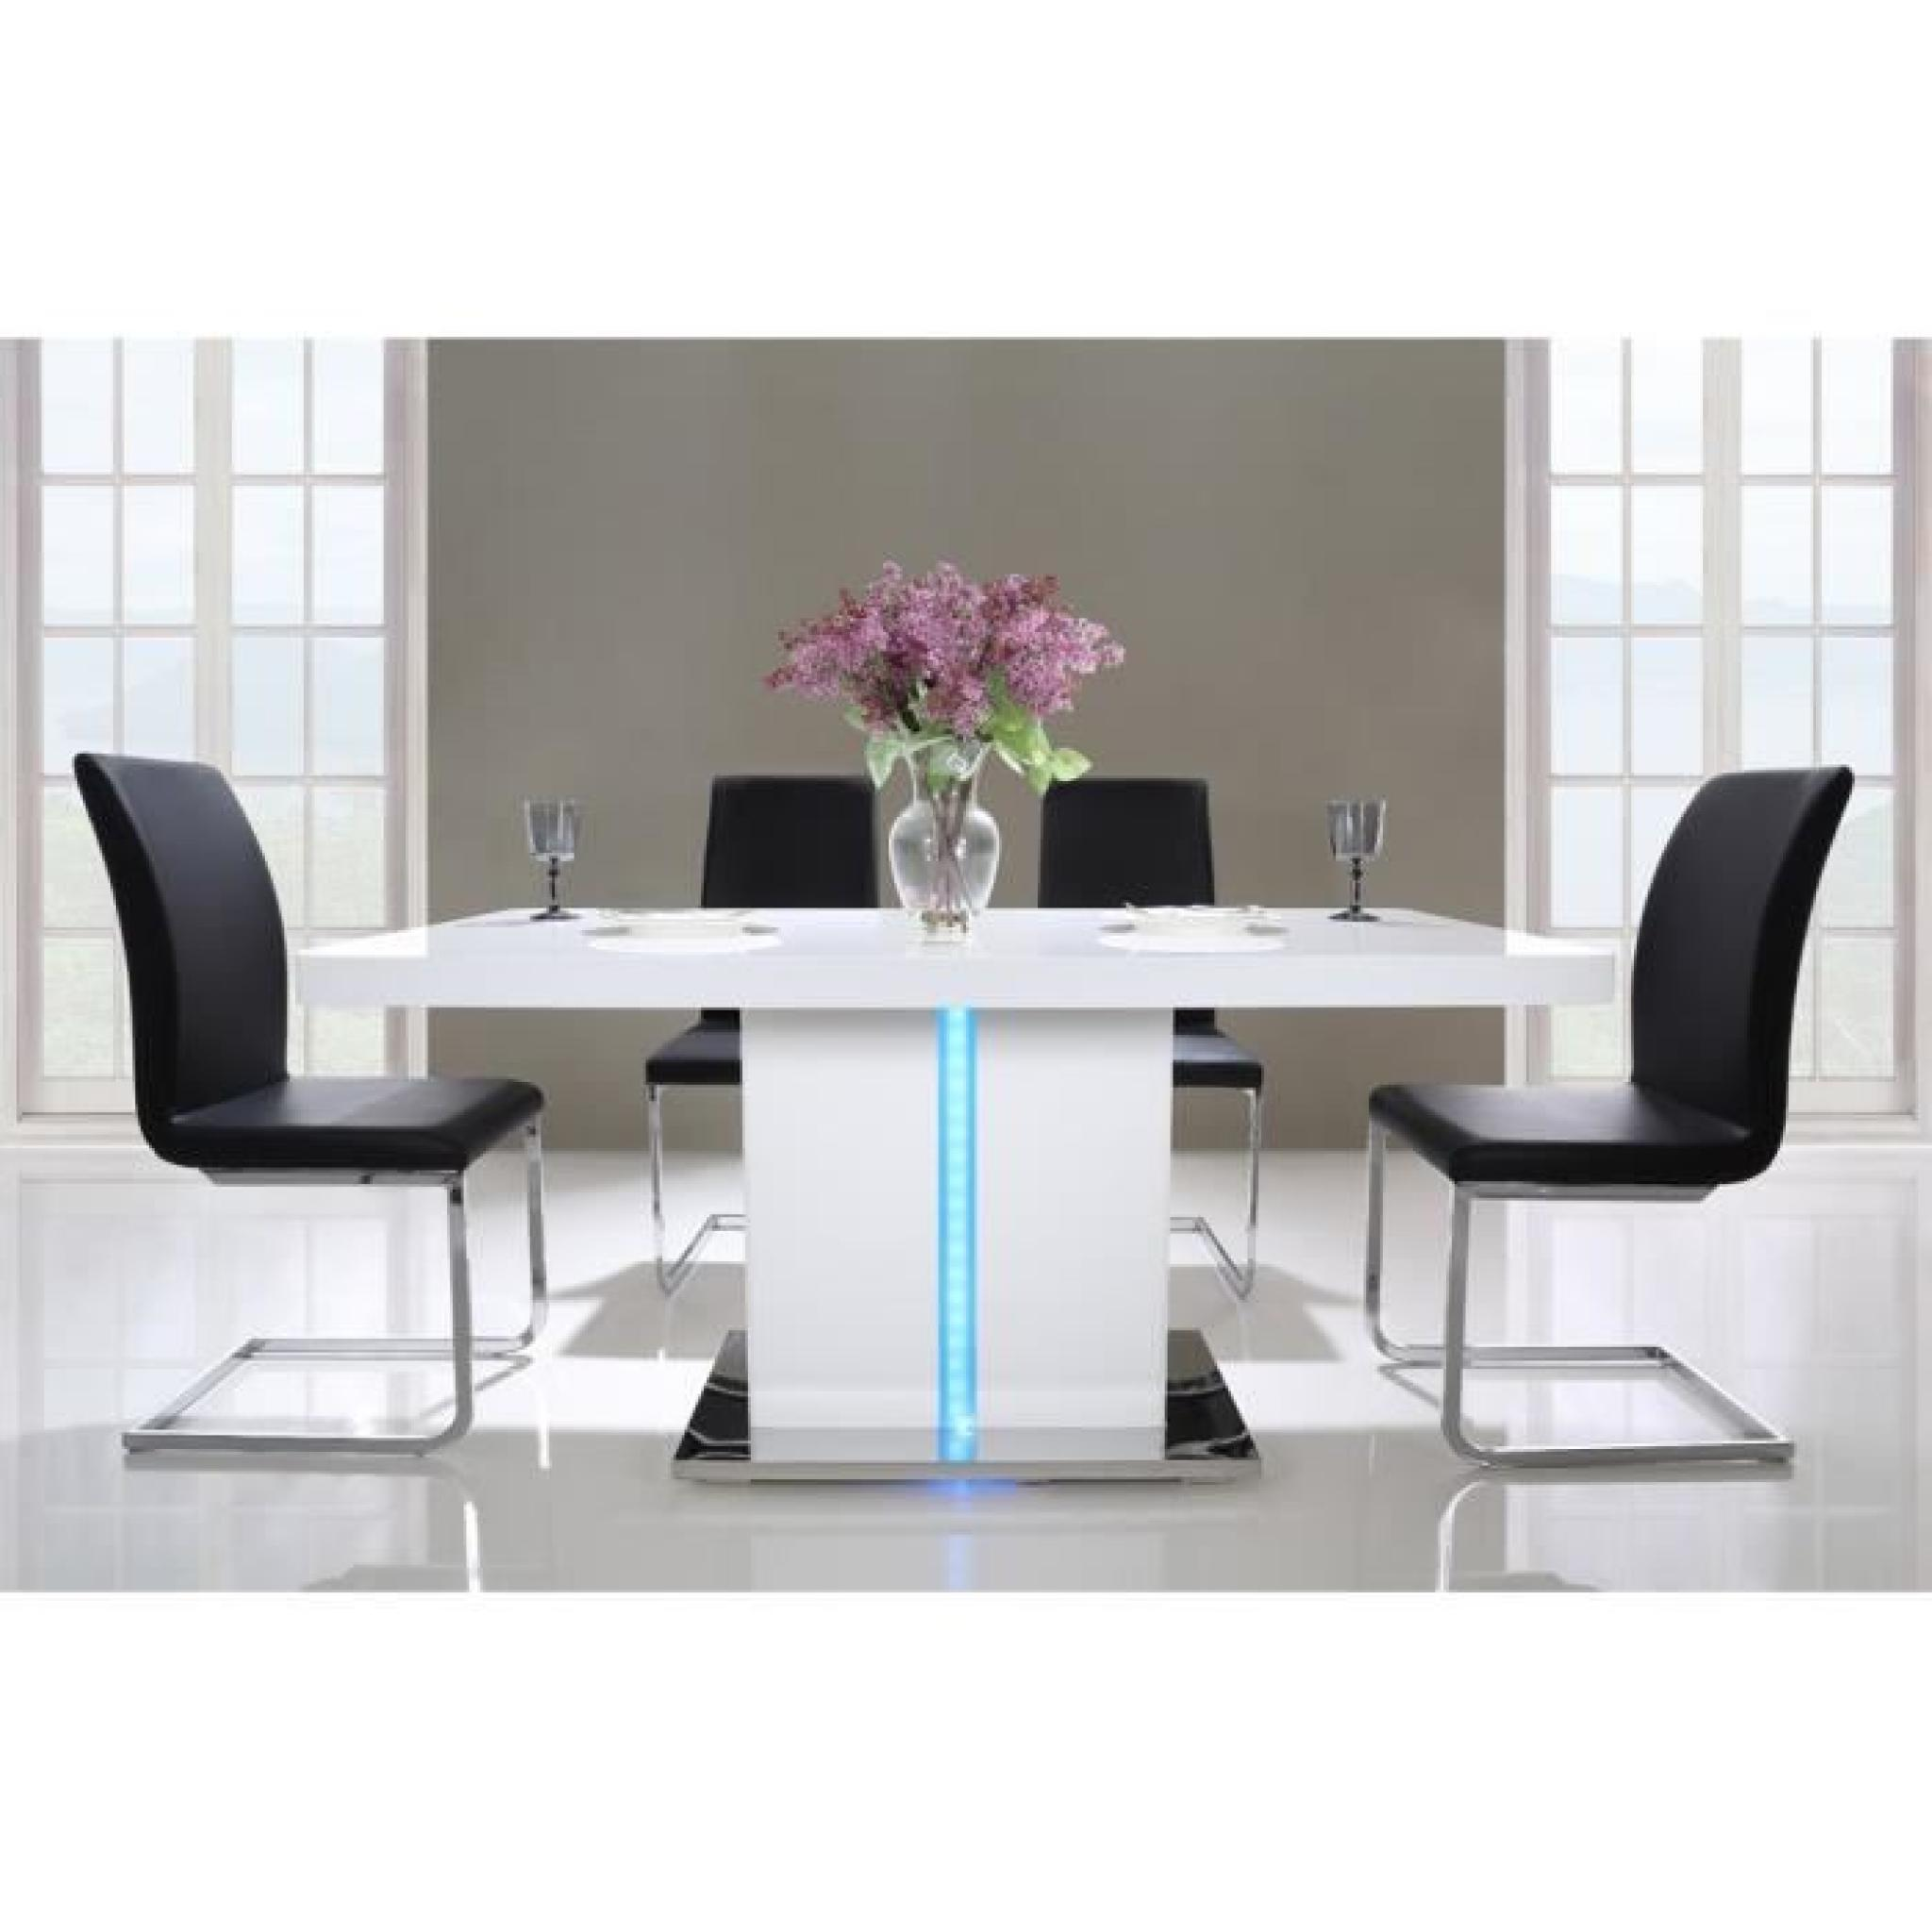 Laser Table Manger 160cm Laqu Blanc Brillant Avec Led Multicolore Achat Vente Table Salle A